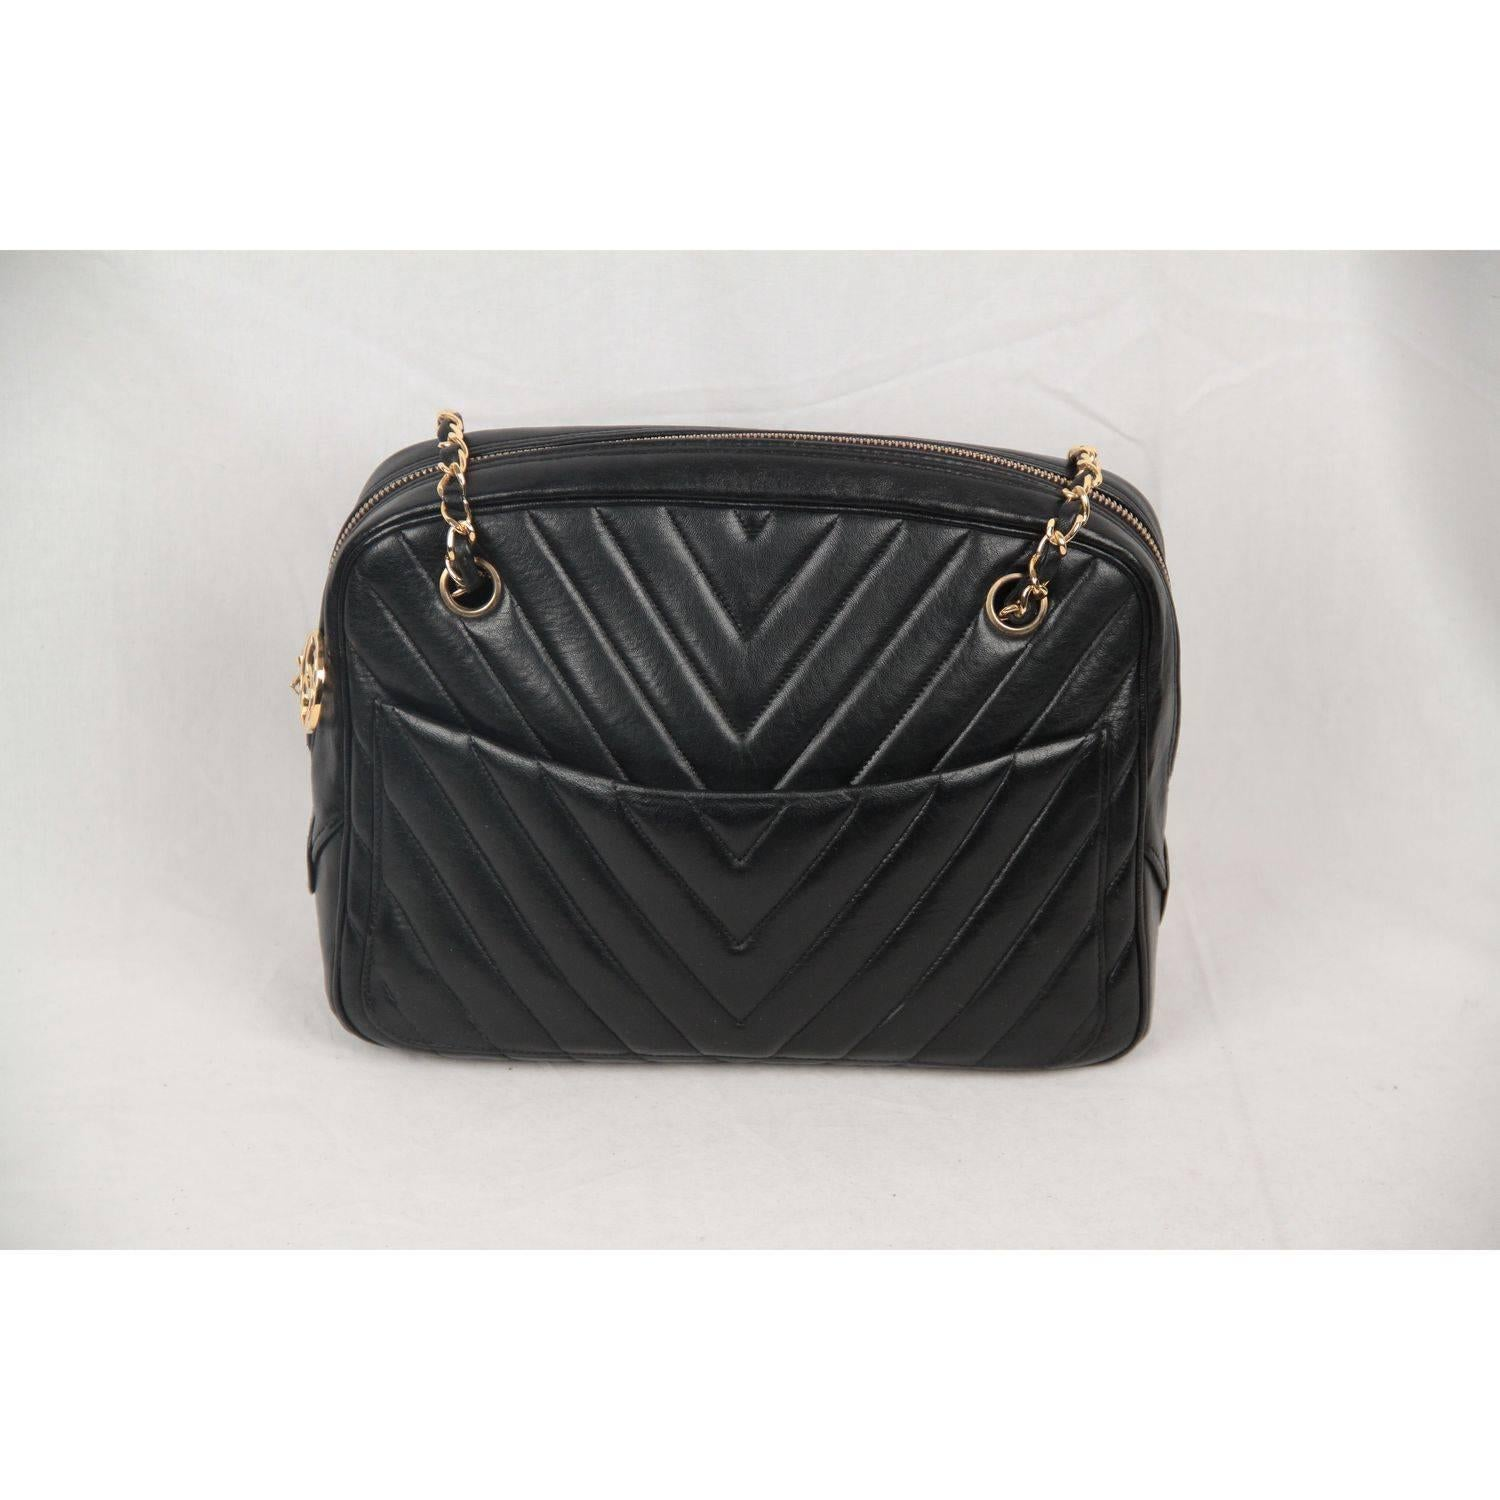 leather products authentic quilted bag black chanel boston handbags speedy quilt ghw vintage